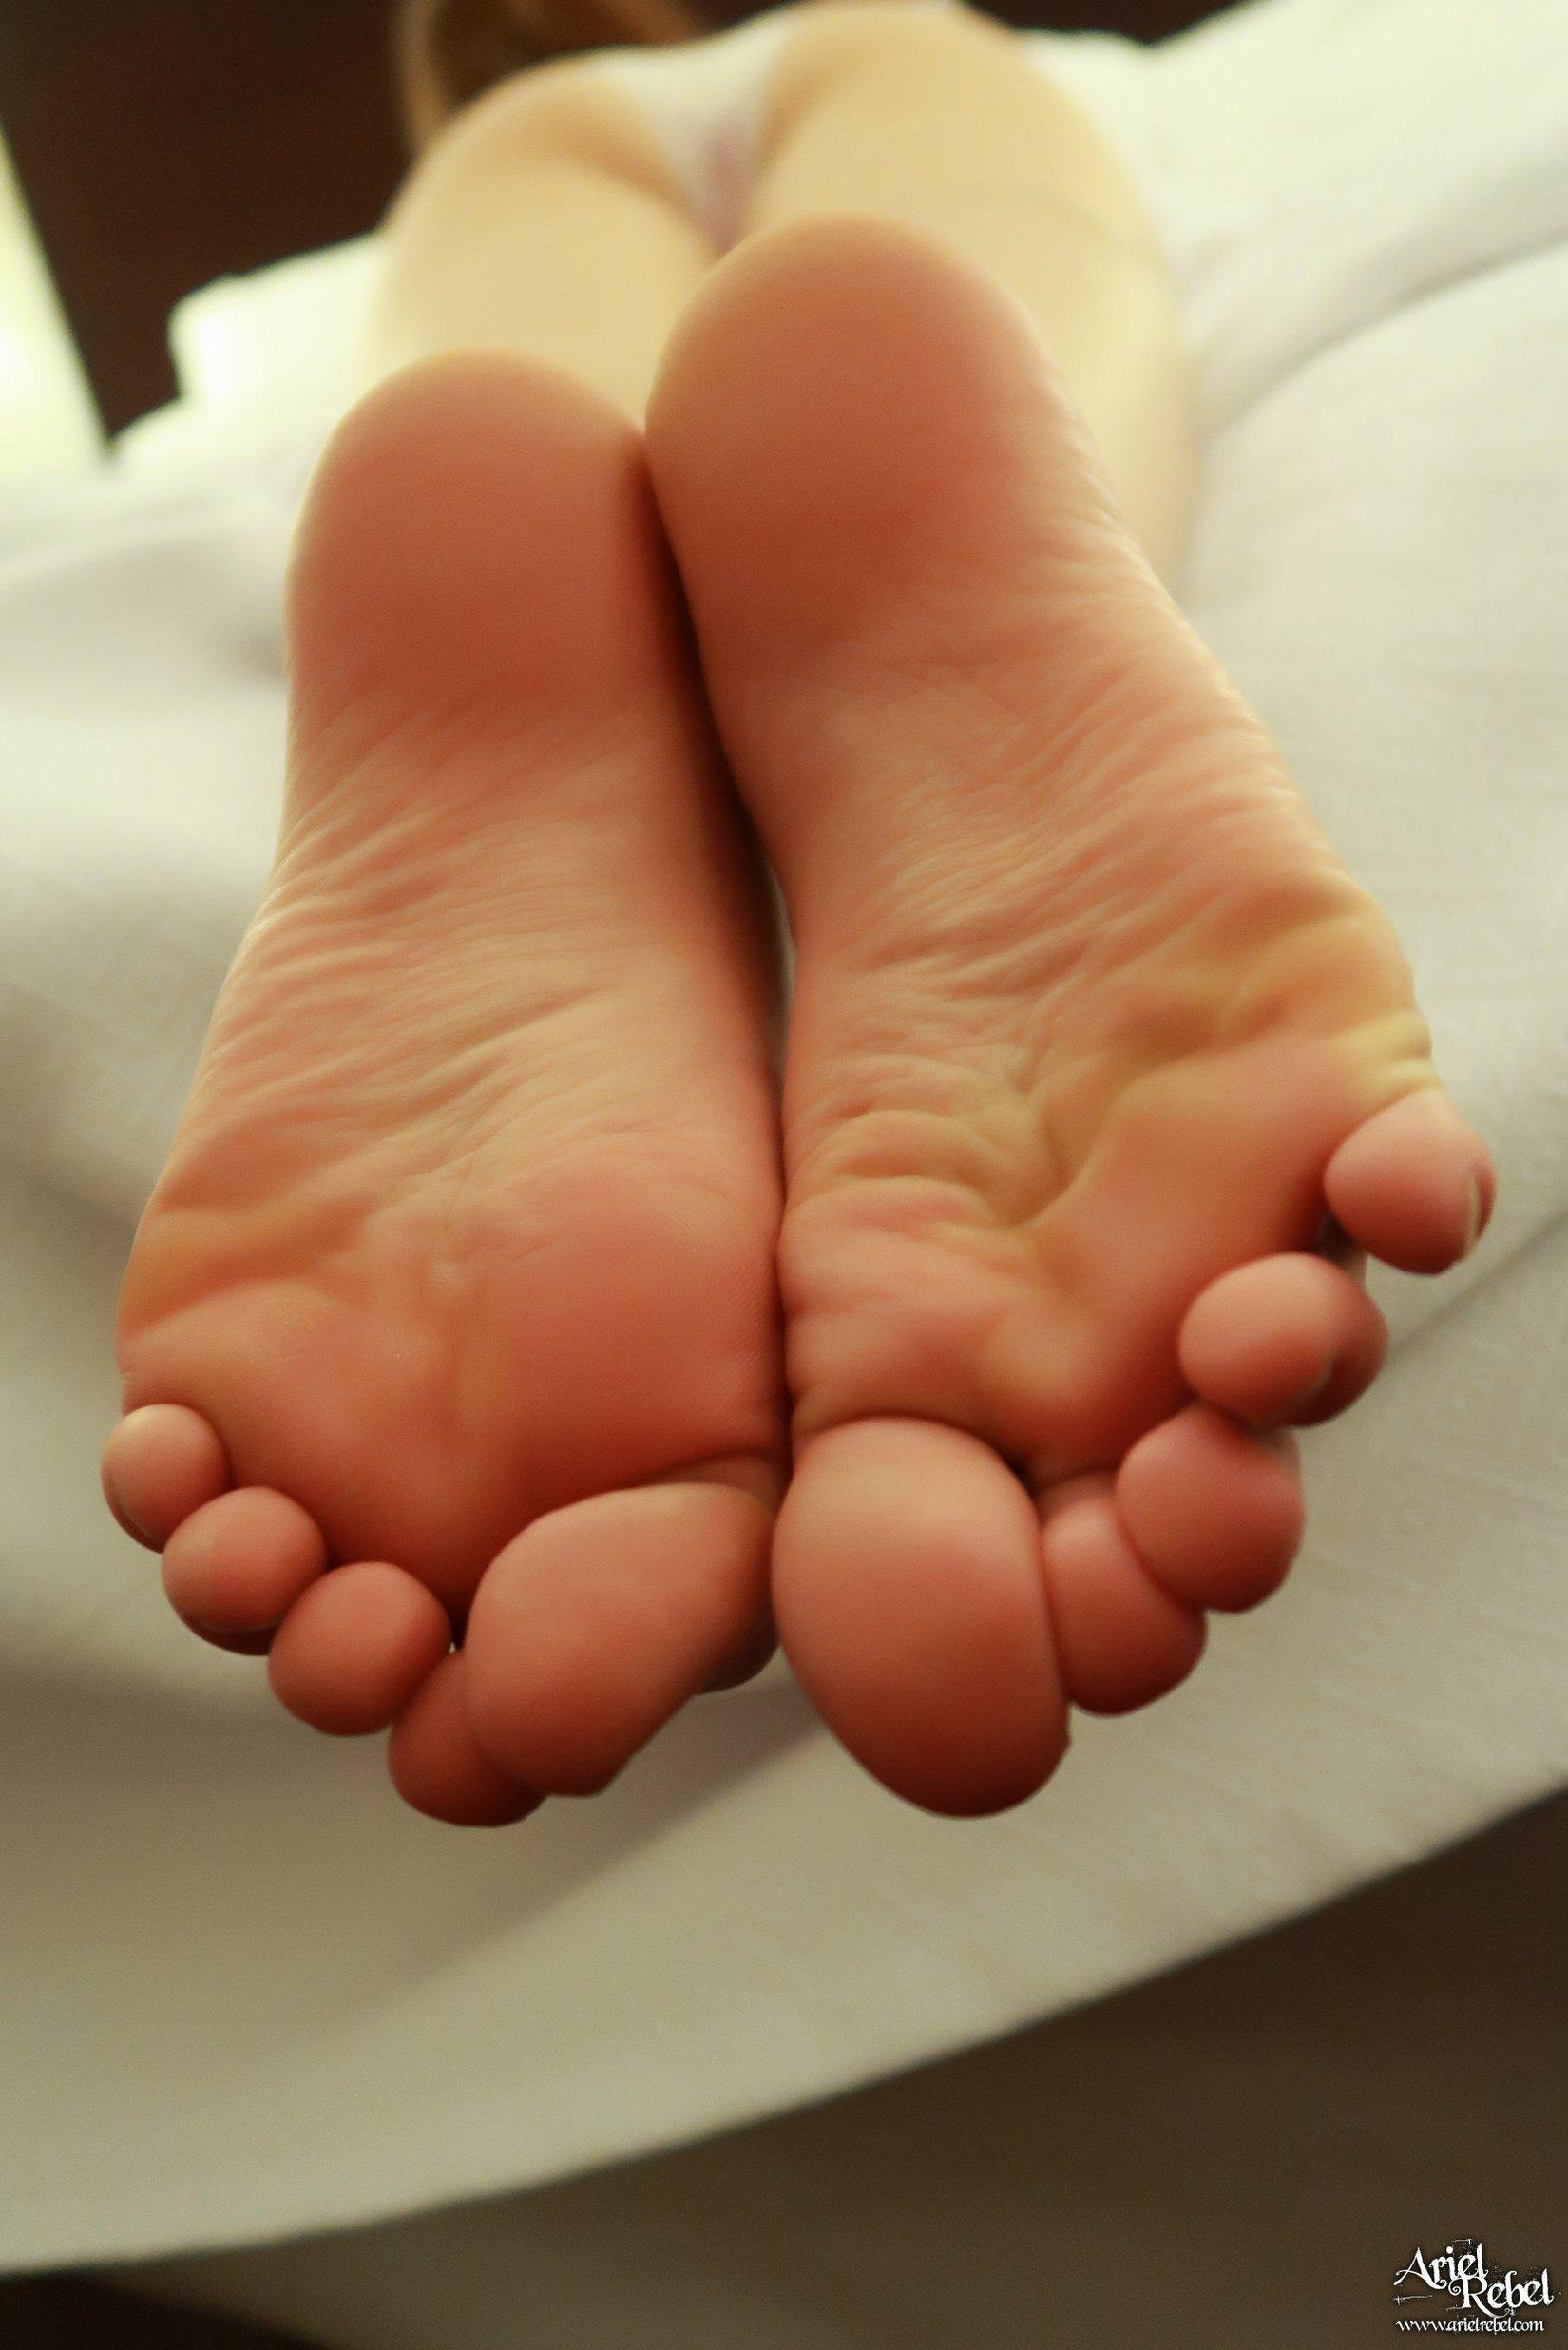 Ariel Rebel Hotel Footsies | Coed Cherry photo 4